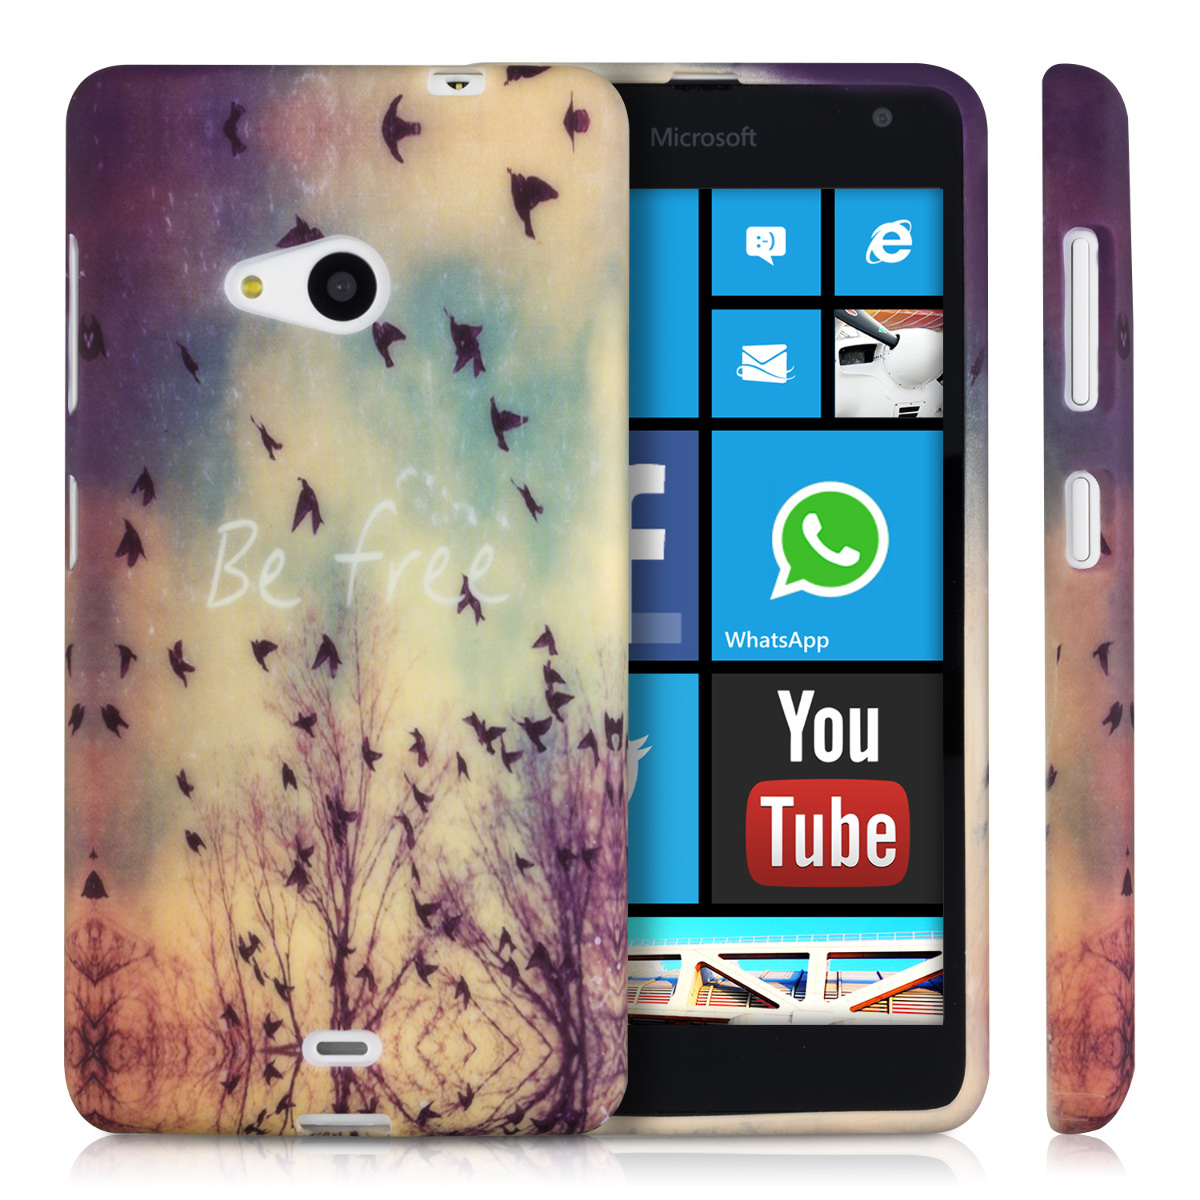 kwmobile tpu silikon case f r microsoft lumia 535 wunschfarbe silikon h lle ebay. Black Bedroom Furniture Sets. Home Design Ideas